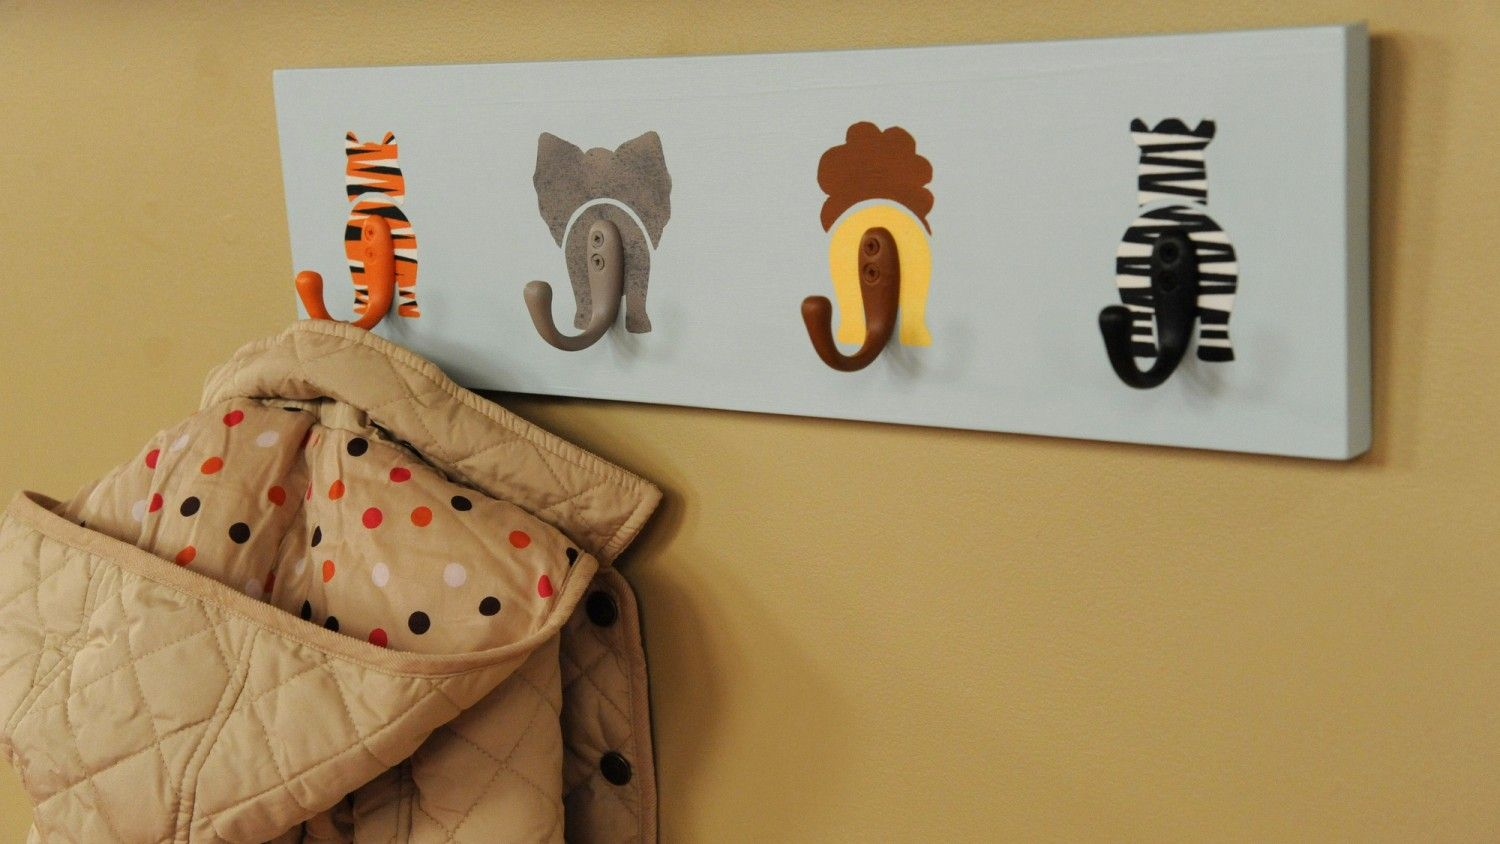 Decorate A Baby S Nursery With This Wildly Adorable Coat Rack Seen On The Martha Show To Add Texture Like Fur Your Creatures